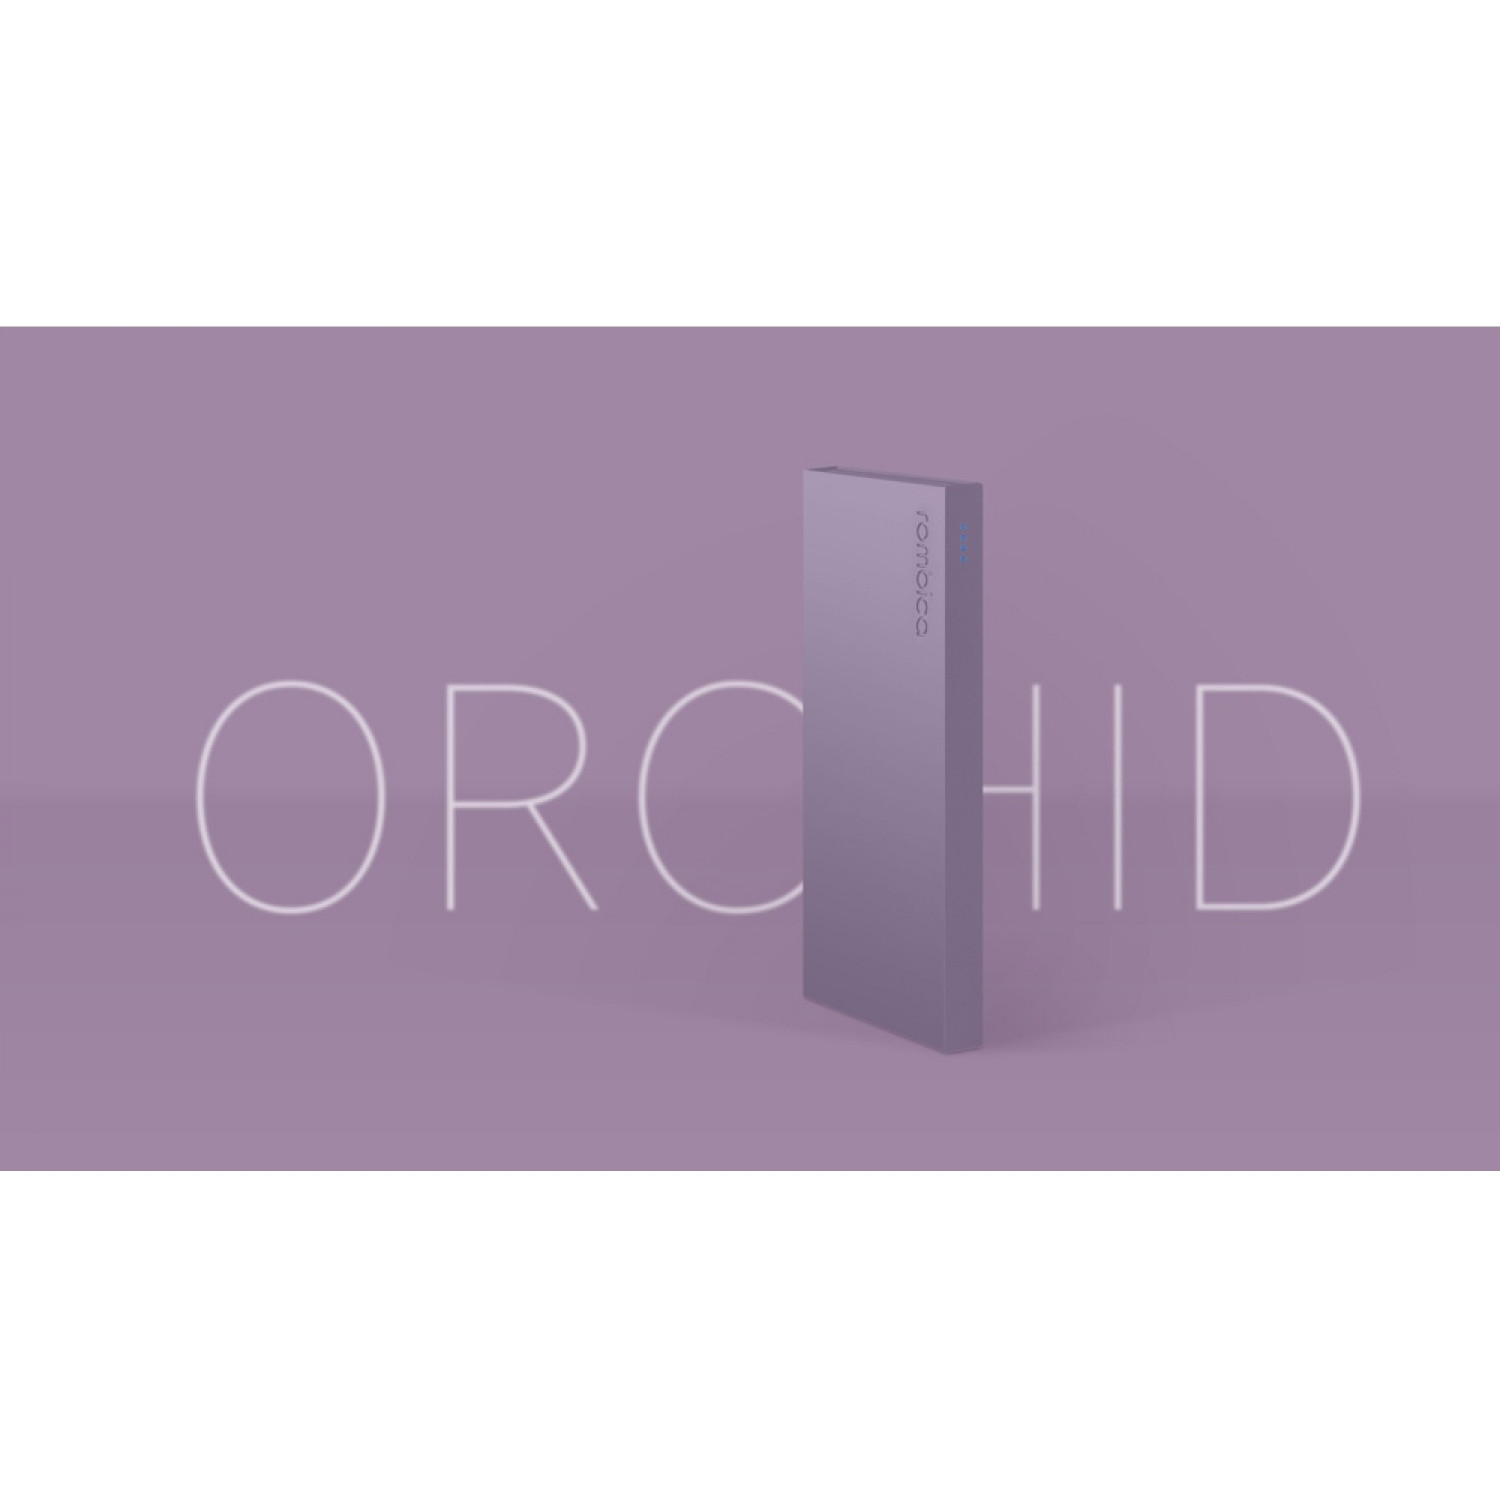 Внешний аккумулятор Rombica NEO ARIA Orchid, 10000мАч, Soft-touch, PD, QCharge, Type-C, сиреневый